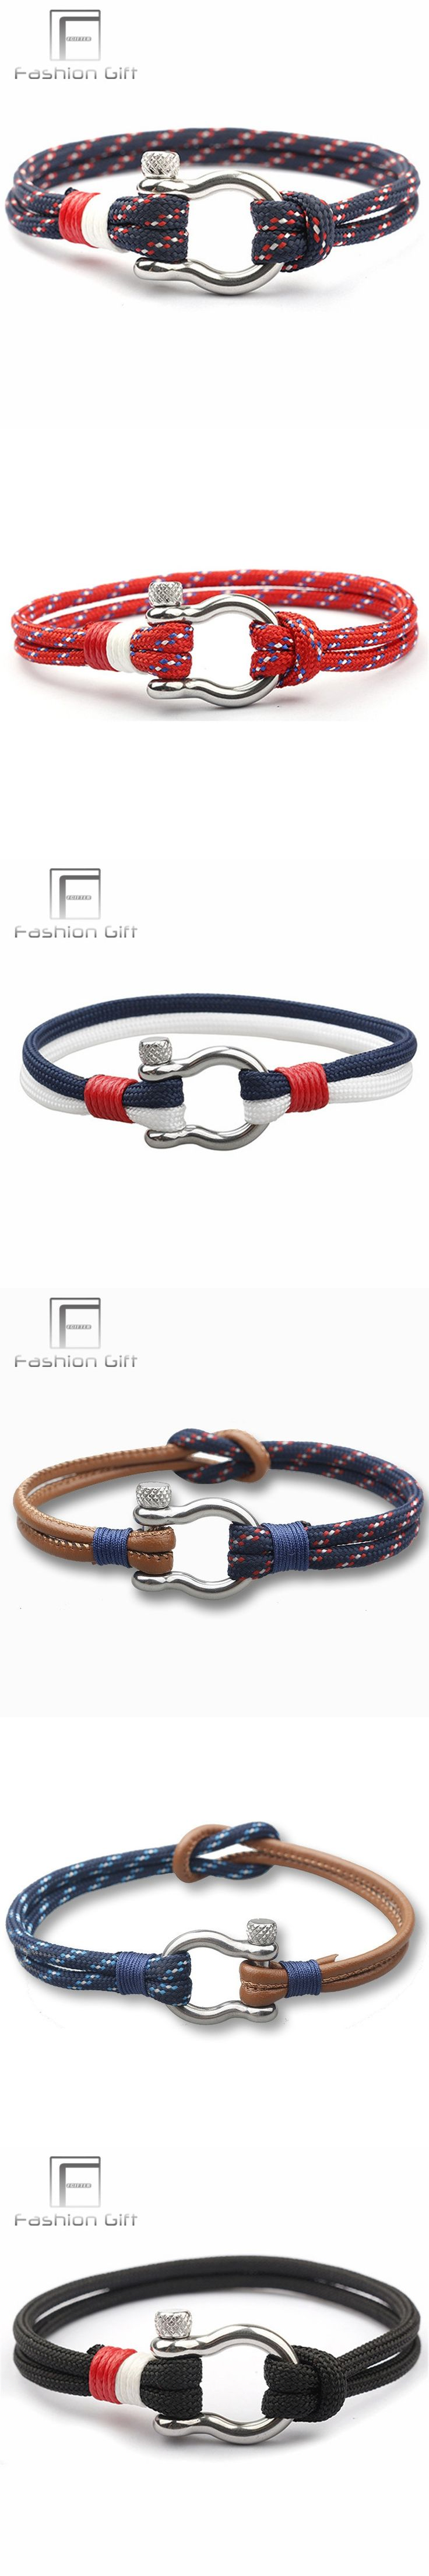 Fashion Men Leather Bracelets of Survival Stainless Steel Clasp Sport Climbing Rope Bracelet Handmade Jewelry